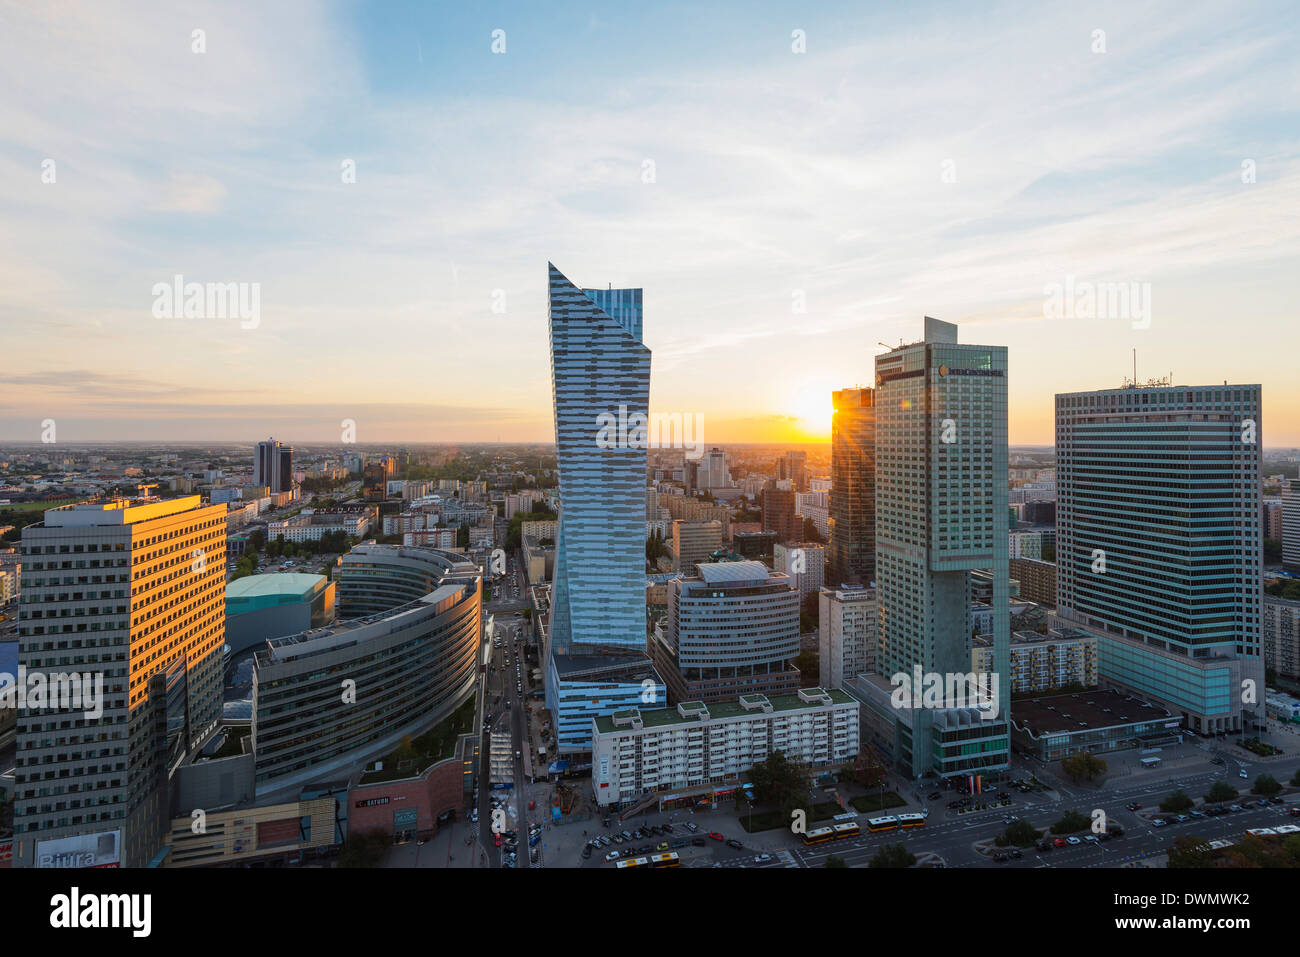 City view from Palace of Culture and Science, Warsaw, Poland, Europe Stock Photo